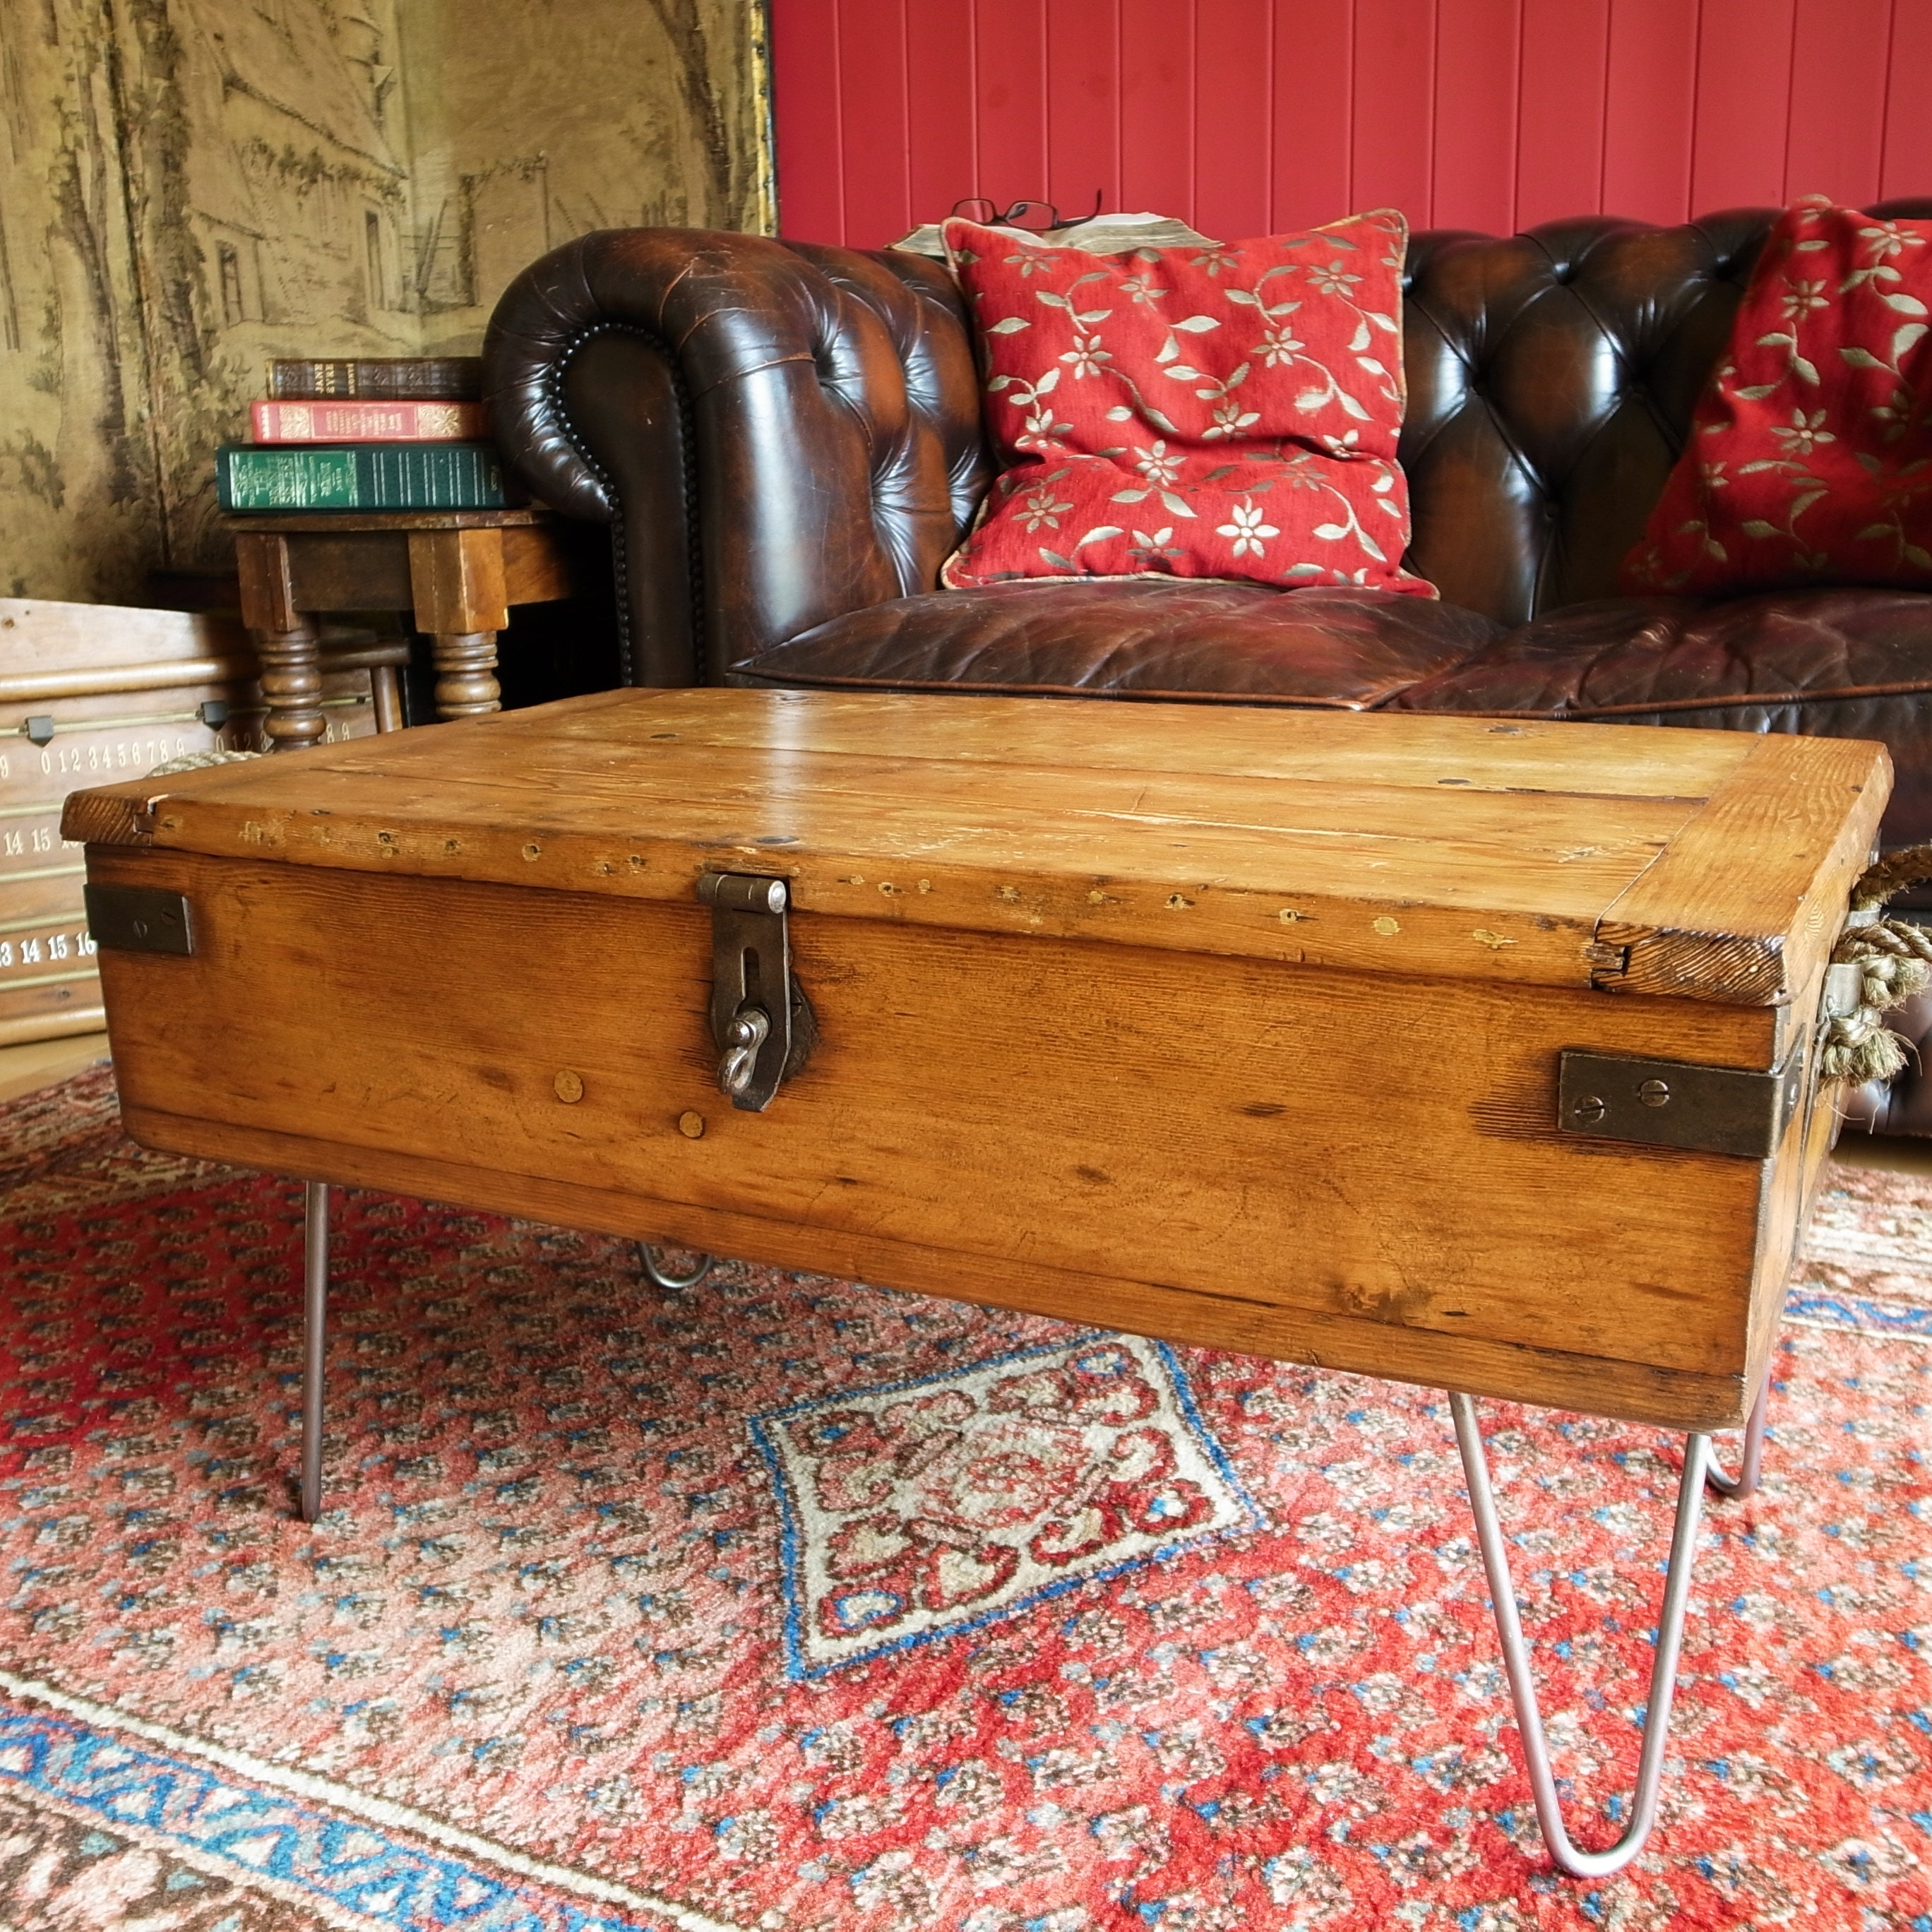 Vintage Coffee Table Storage Trunk Reclaimed Industrial Military Chest Rustic Wooden Furniture Tv Stand